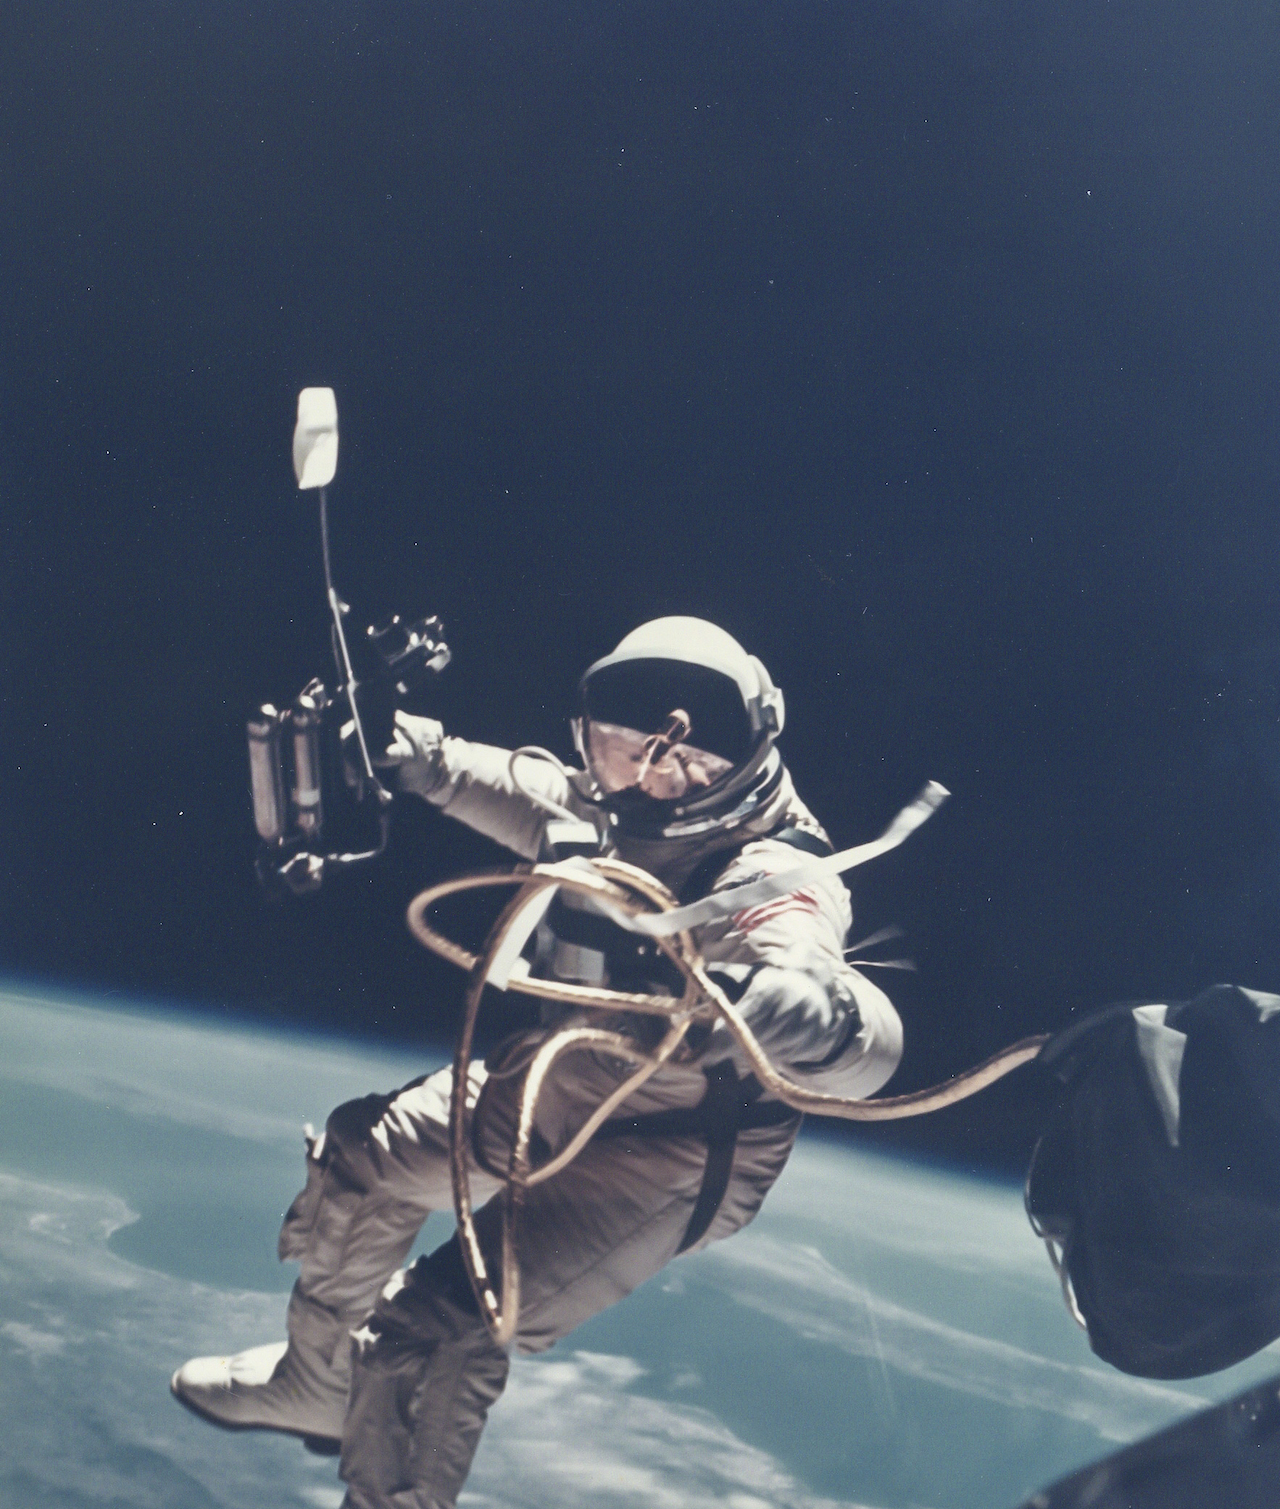 James McDivitt First US Spacewalk - Ed White's EVA over New Mexico, Gemini 4, 3 June 1965 Vintage chromogenic print flush-mounted to original card, 20 x 25.5cm, image 18 x 15.3cm, [NASA  negative number S-65-30433A] Provenance: The personal collection of Ed White, Heritage Auctions, Sale 6082, lot Captivated by the experience of his spacewalk, Ed White resisted repeated calls from Houston to get  back to the craft: Est. £800-1,200 Reproduction, © Bloomsbury Auctions